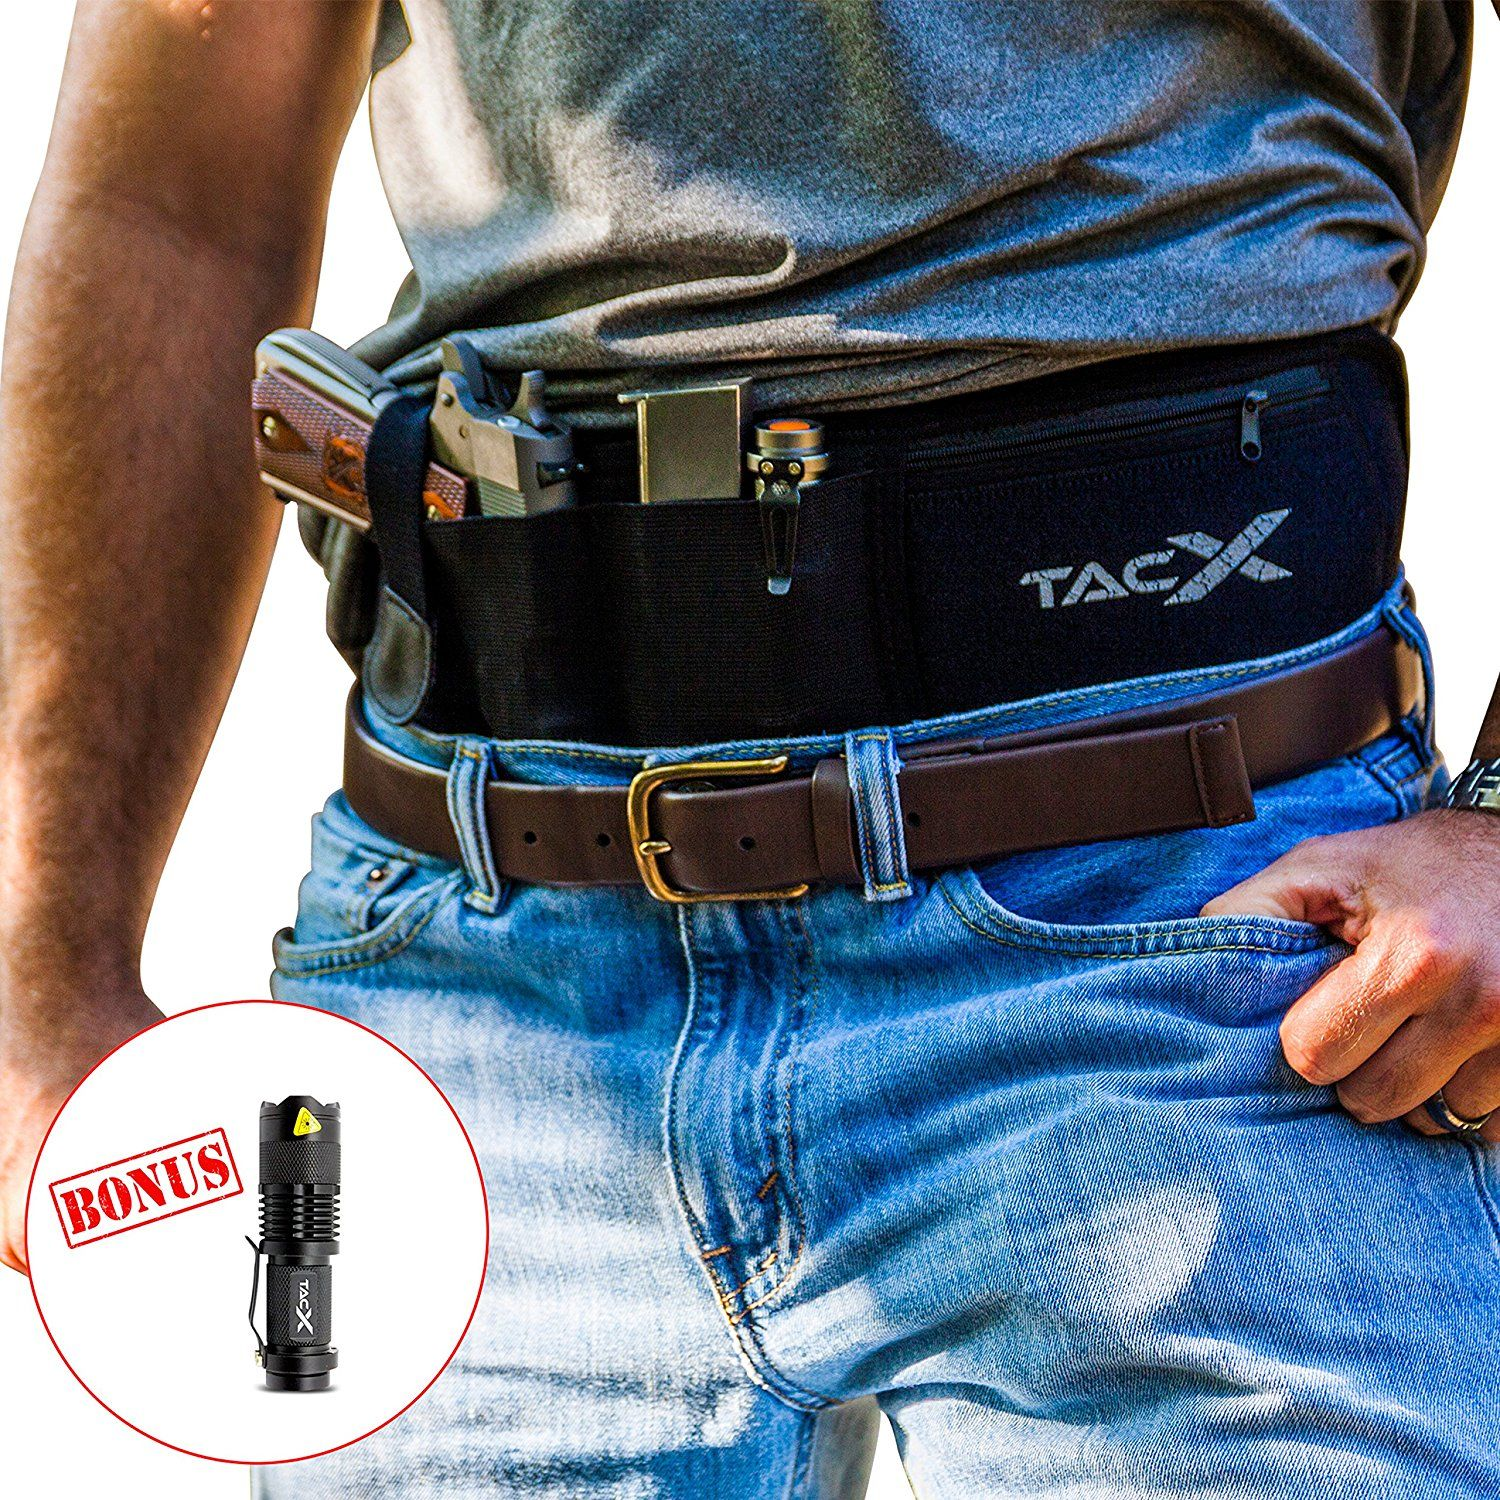 f07b92659dcc Belly Band Holster For Concealed Carry + Tactical LED Light   IWB OWB Waist  Band Handgun Carrying System   Adjustable Waist Hand Gun Holder For Pistols  ...